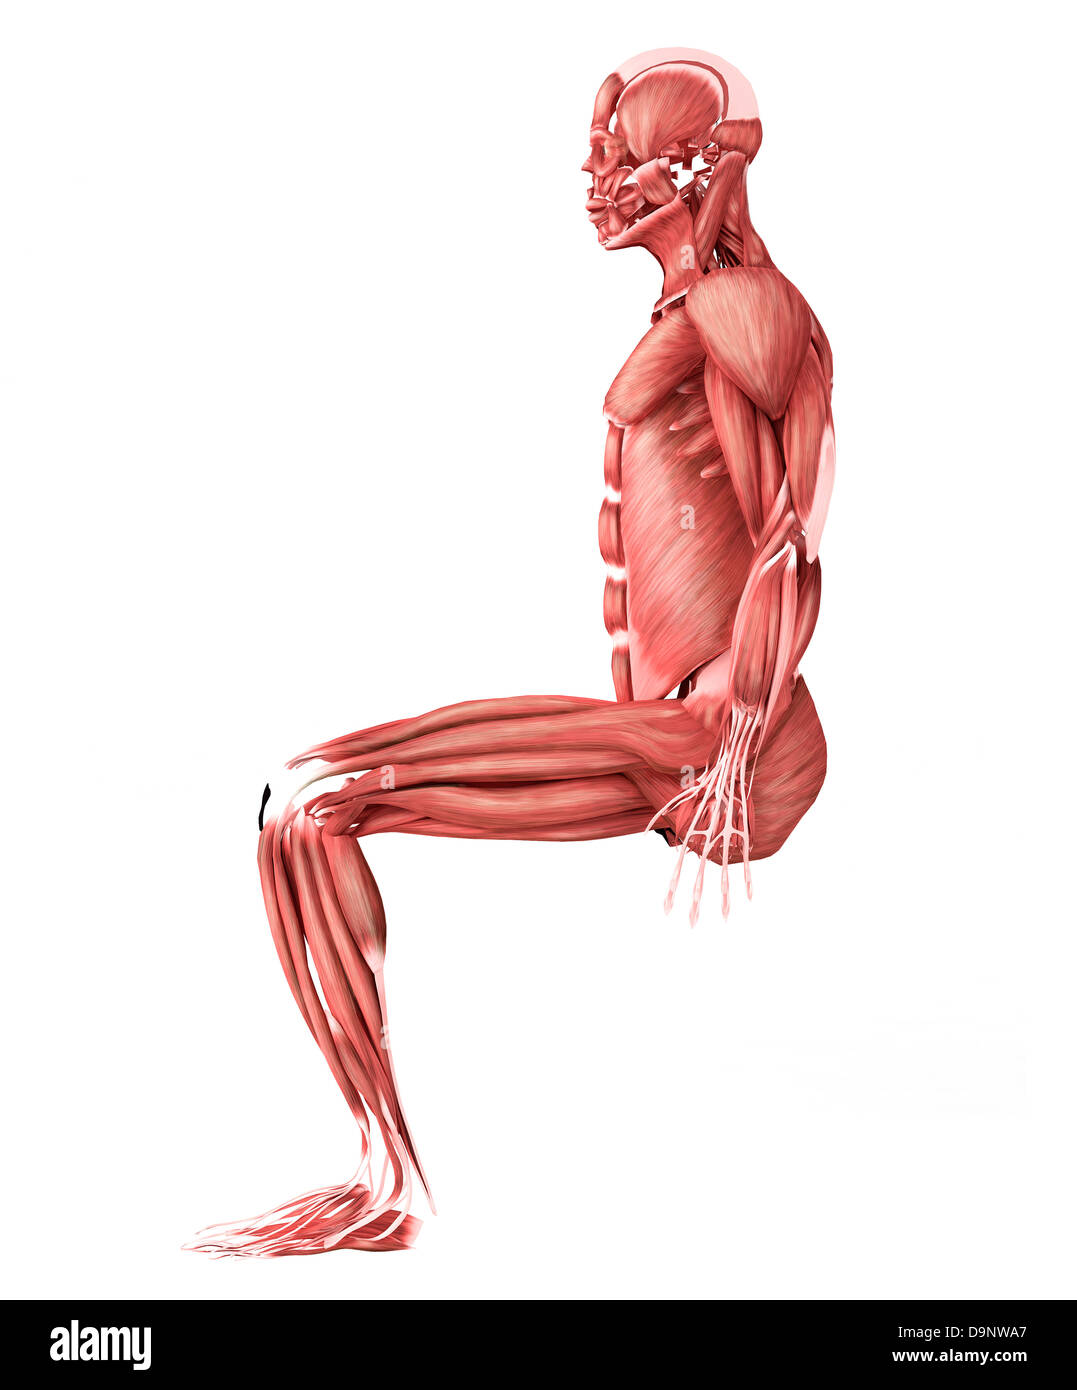 Medical Illustration Of Male Muscles In A Sitting Position Side